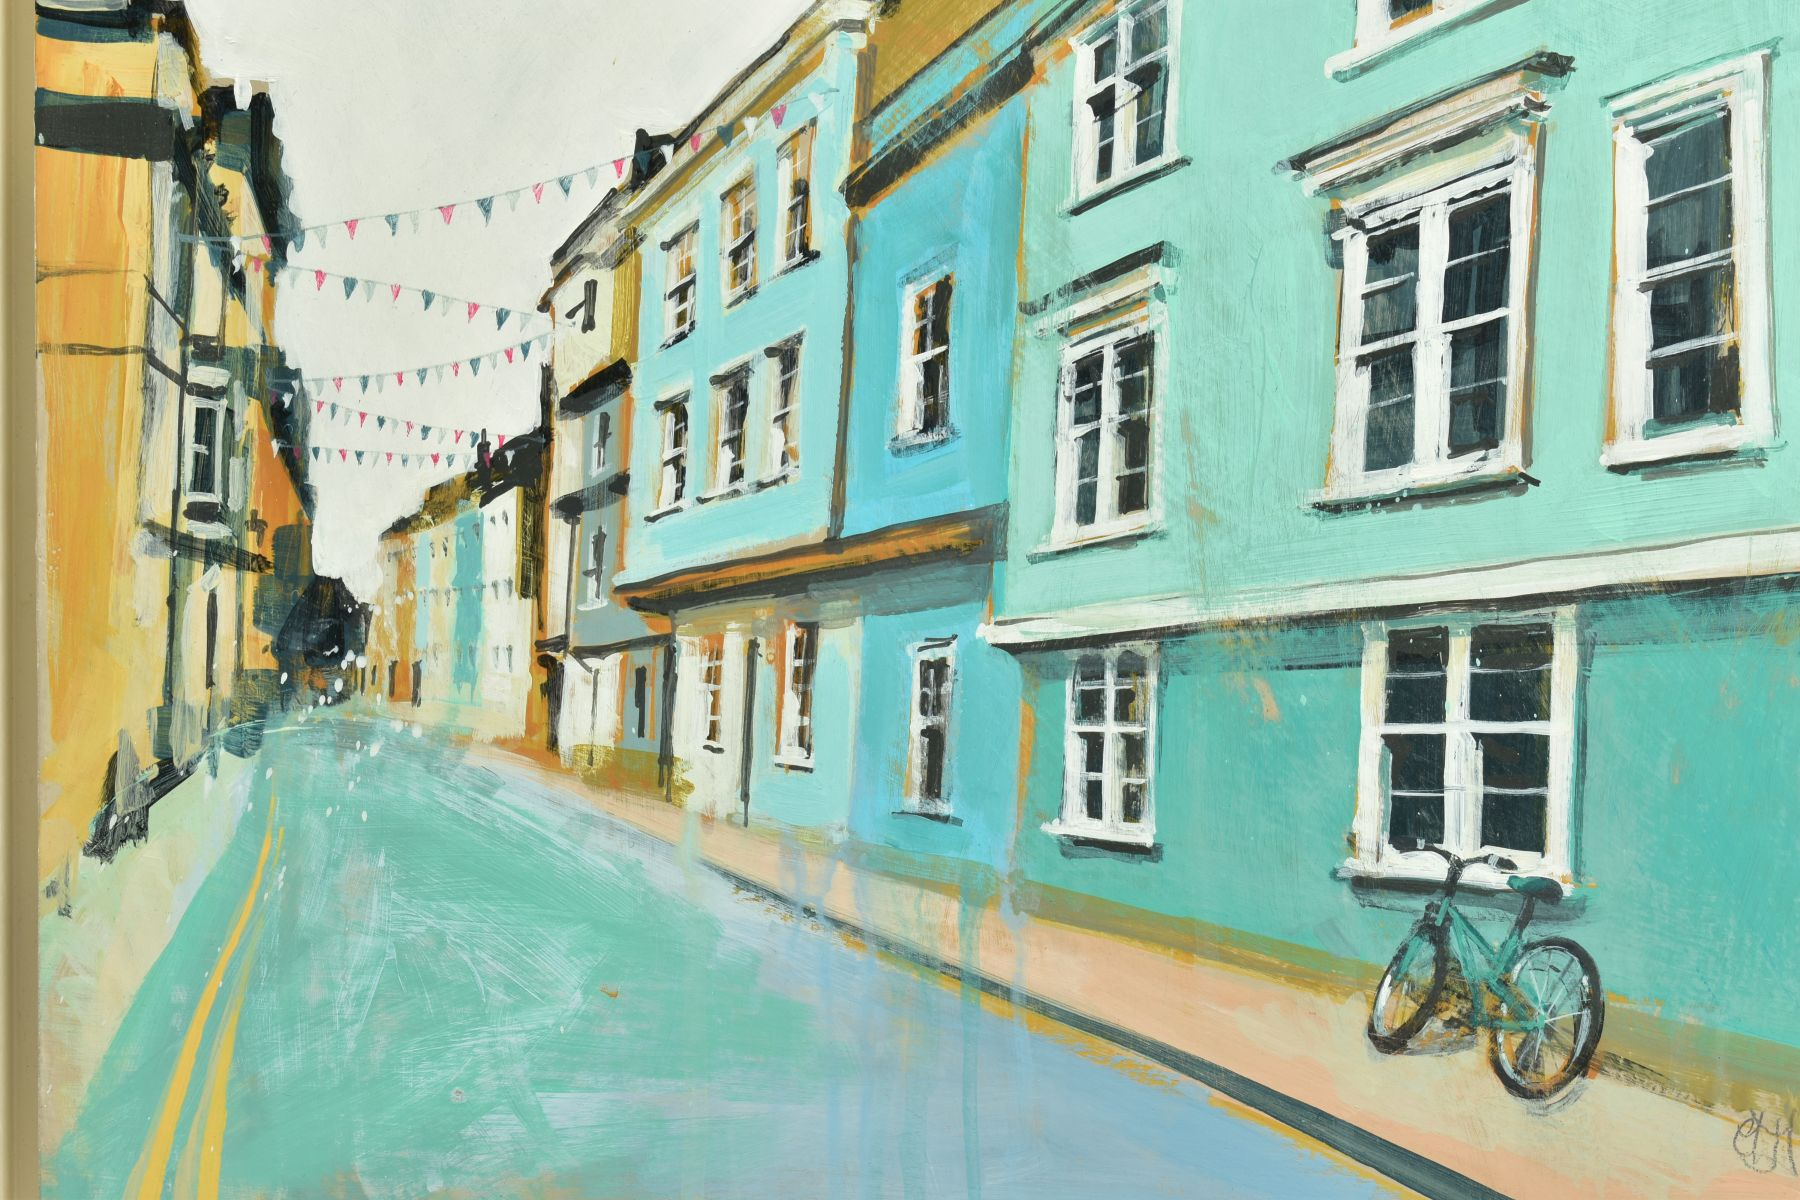 CAMILLA DOWSE (BRITISH 1968), 'Bicycle and Bunting II', a village street scene, initialled bottom - Image 2 of 5